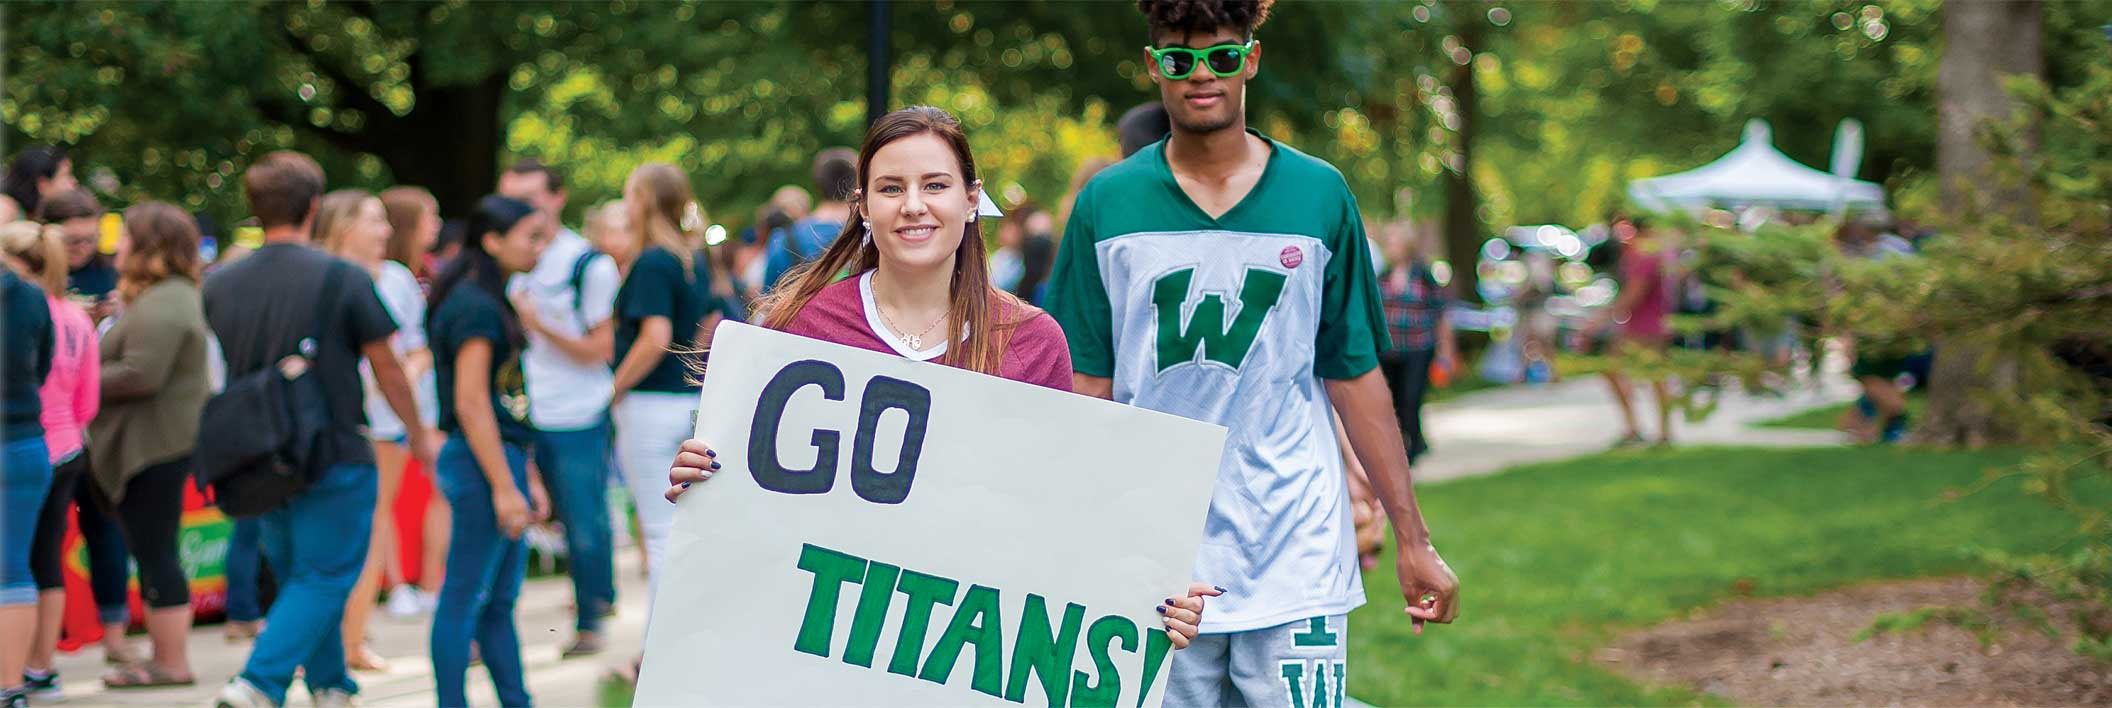 "Student smiling and holding ""Go Titans!"" sign"